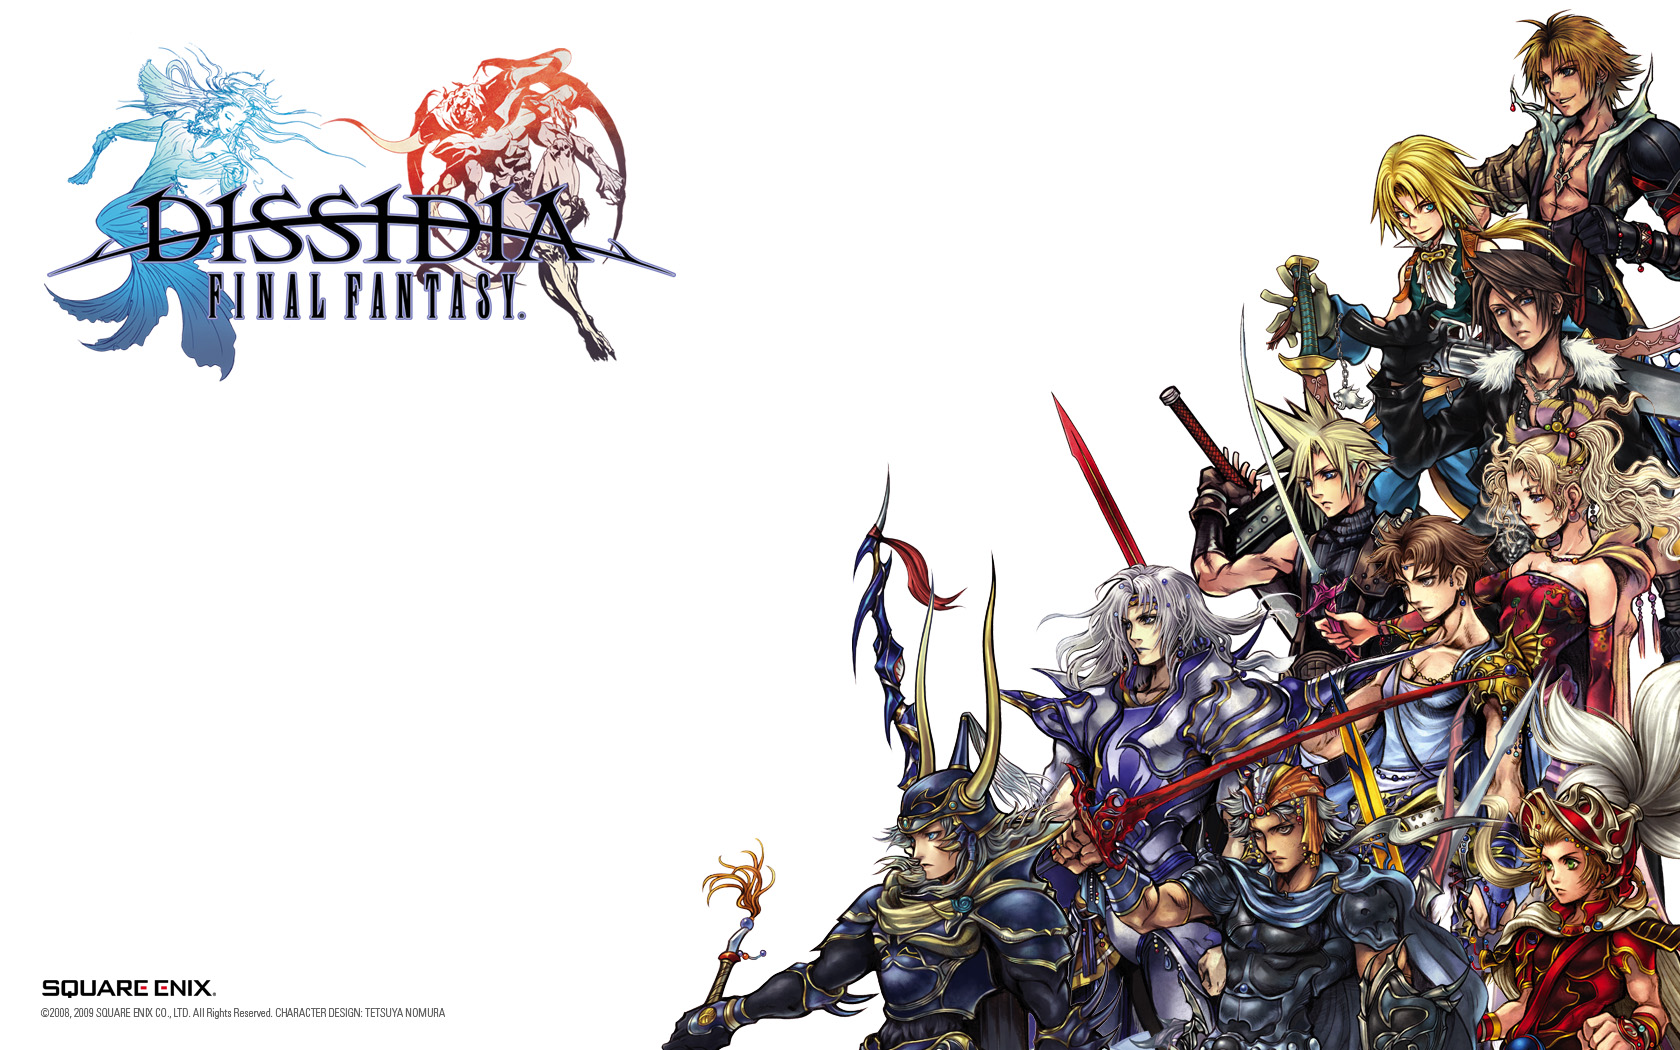 Game Dissidia Final Fantasy Akan Dirilis Untuk Playstation 4